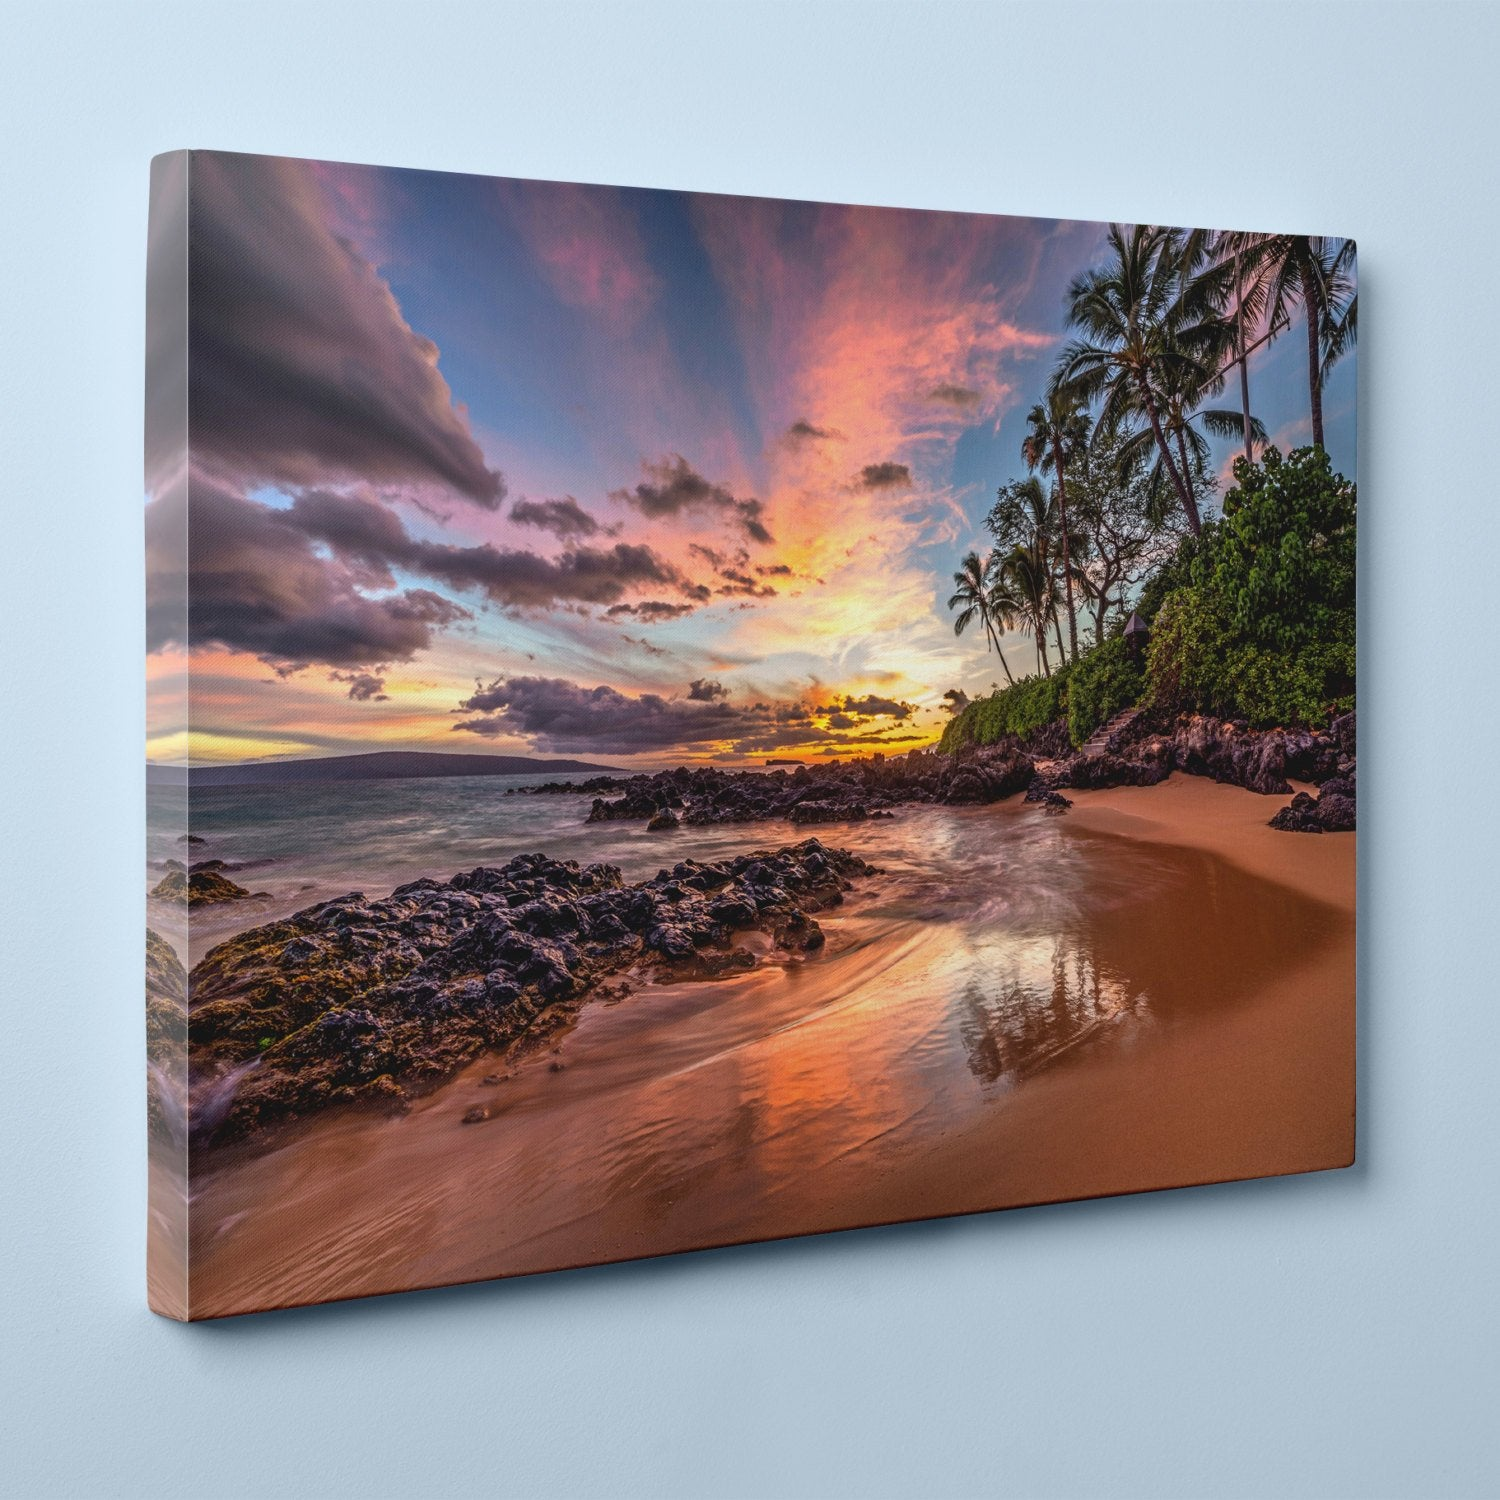 "Hawaiian Sunset at Secret Cove, Maui (16"" x 24"") - Canvas Wrap Print"